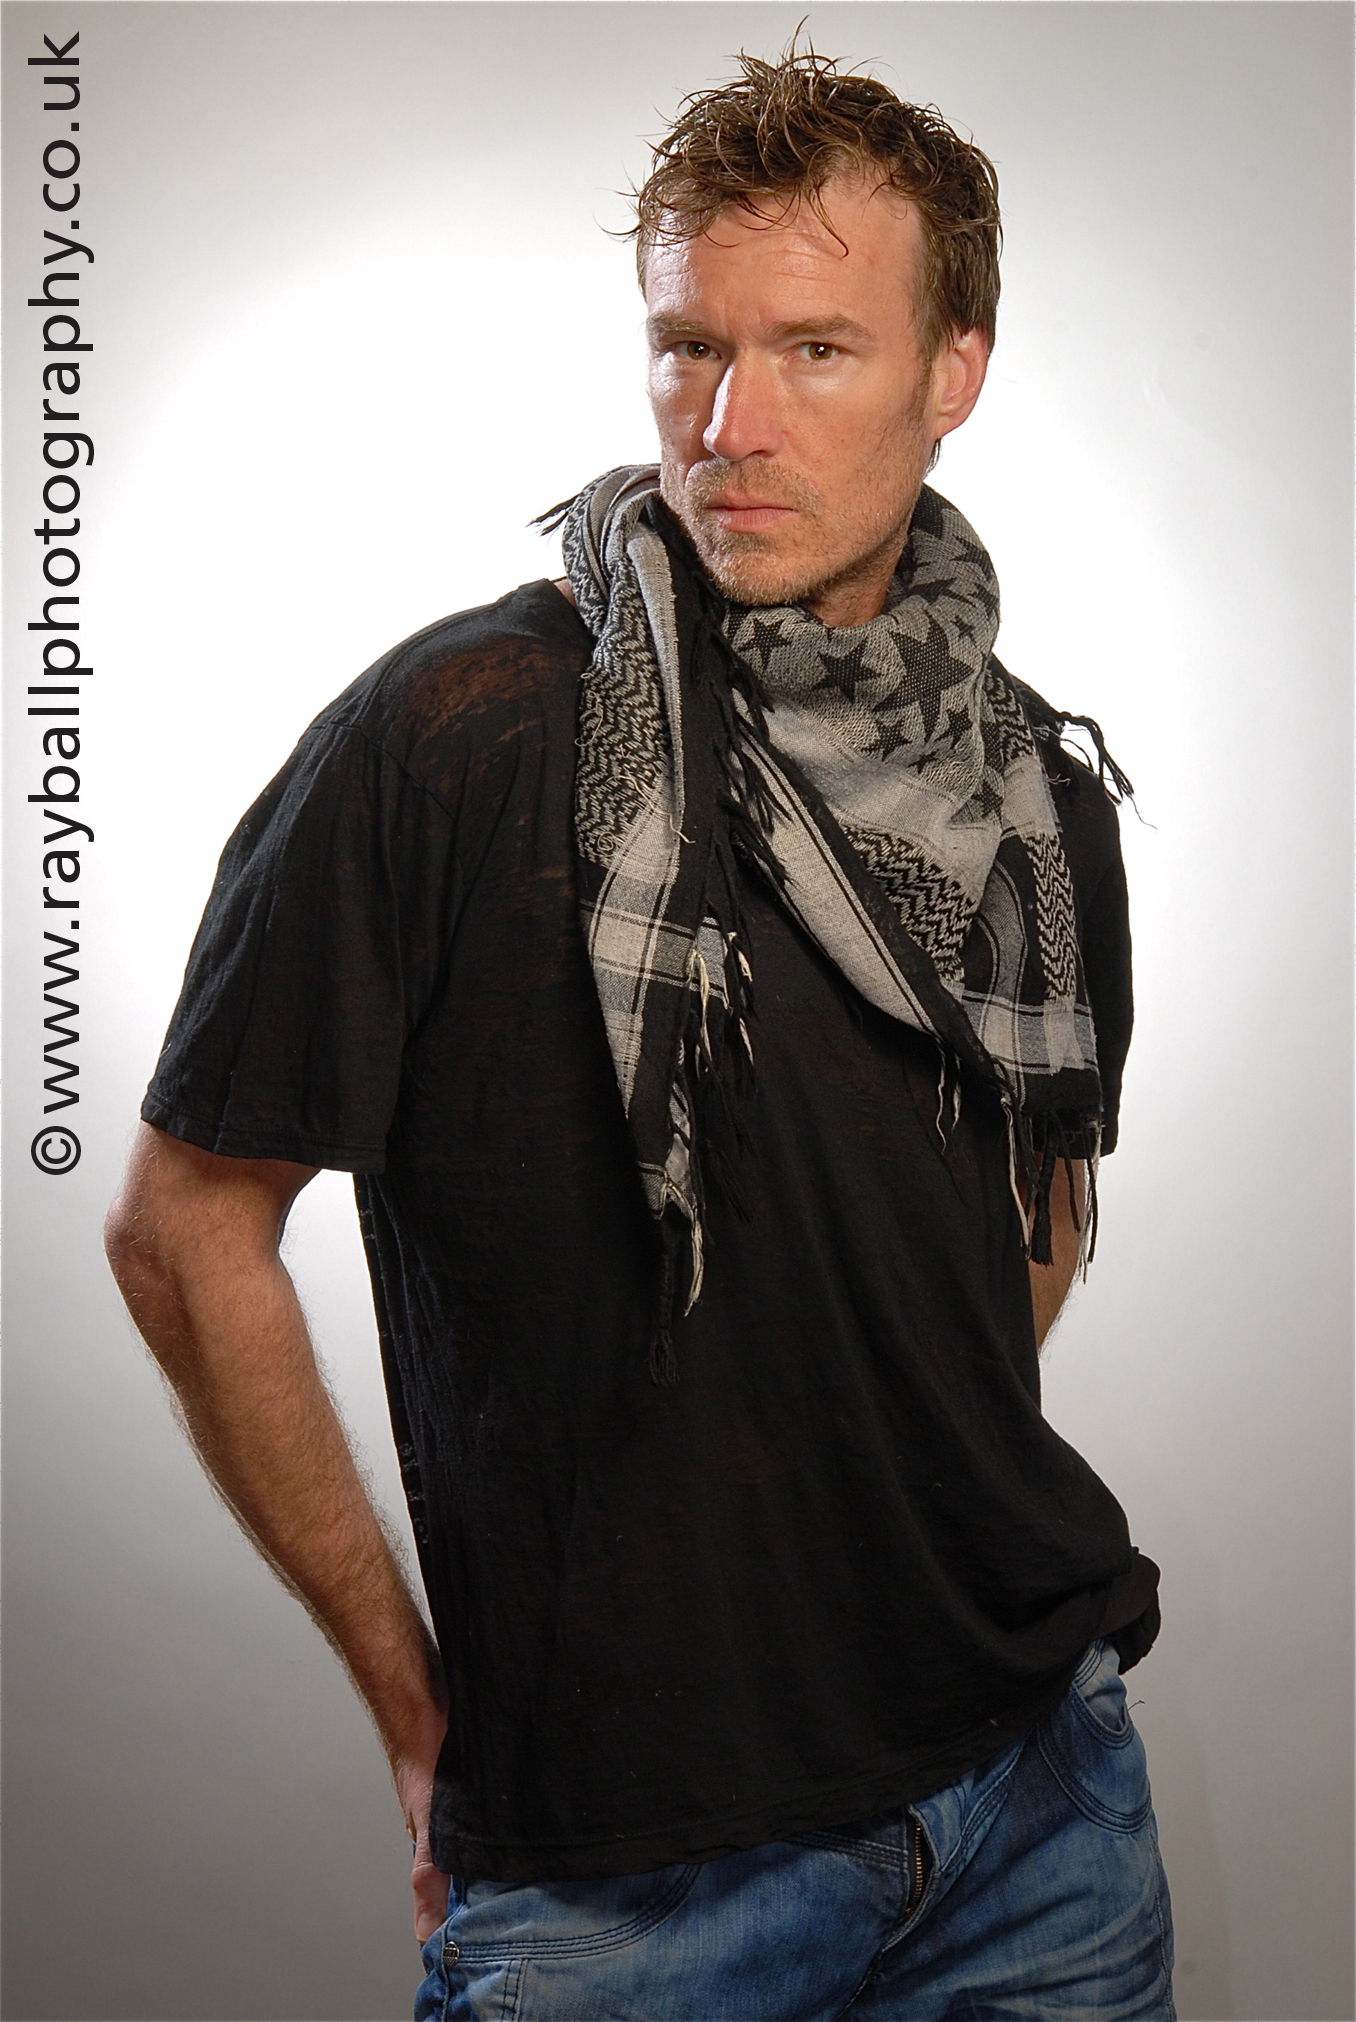 Burgh Heath fashion at Epsom Photography Studio Surrey.